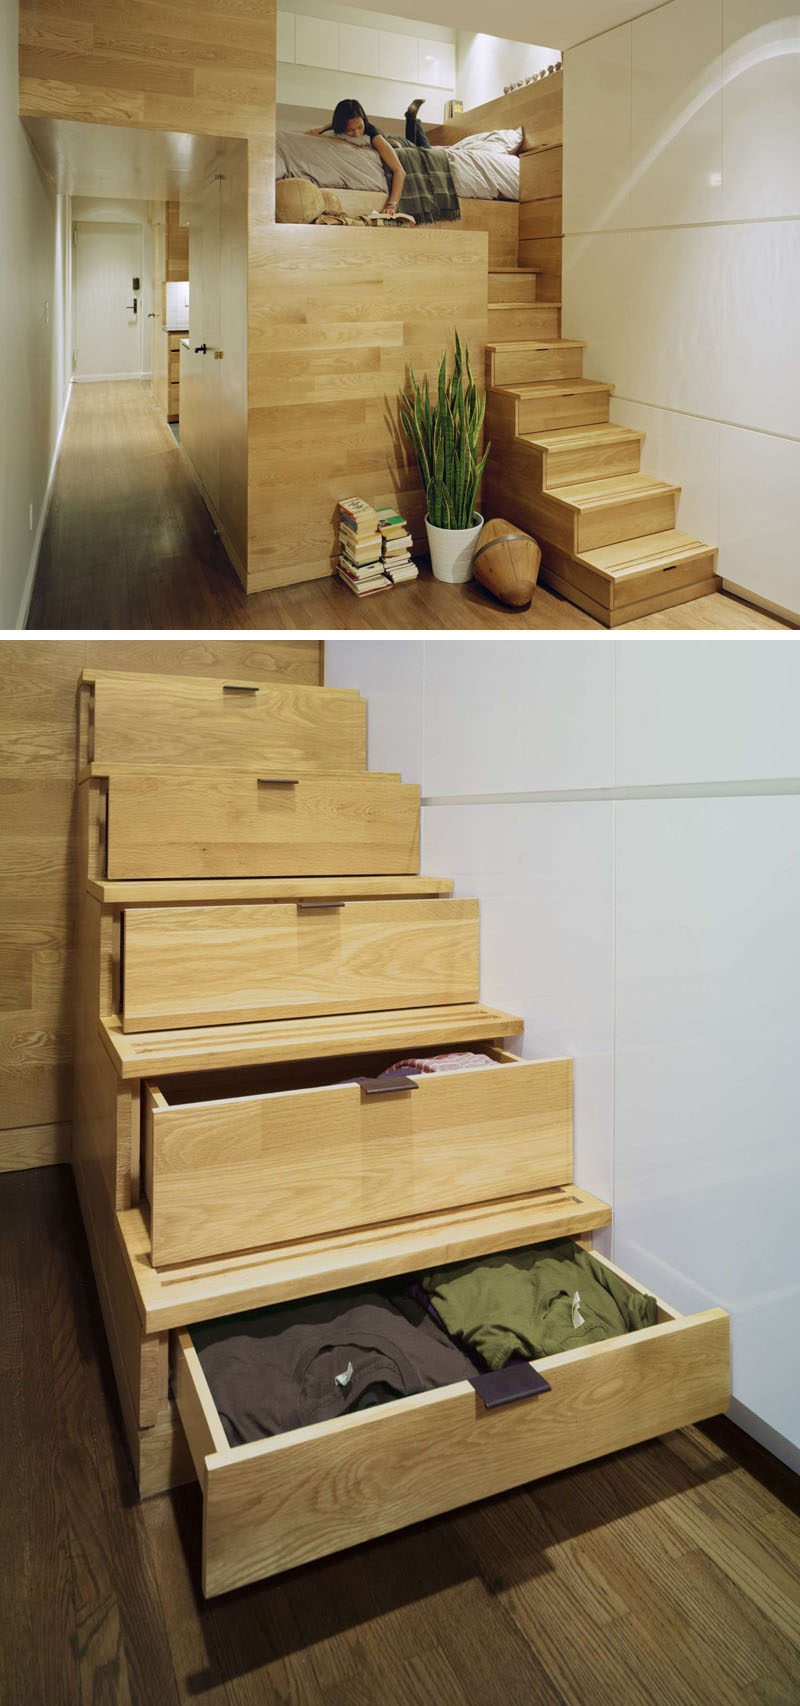 13 Stair Design Ideas For Small Spaces | Loft Stairs For Small Spaces | Child Friendly | Studio Apartment Minimalist | Corner | Steel | Loft Staircase